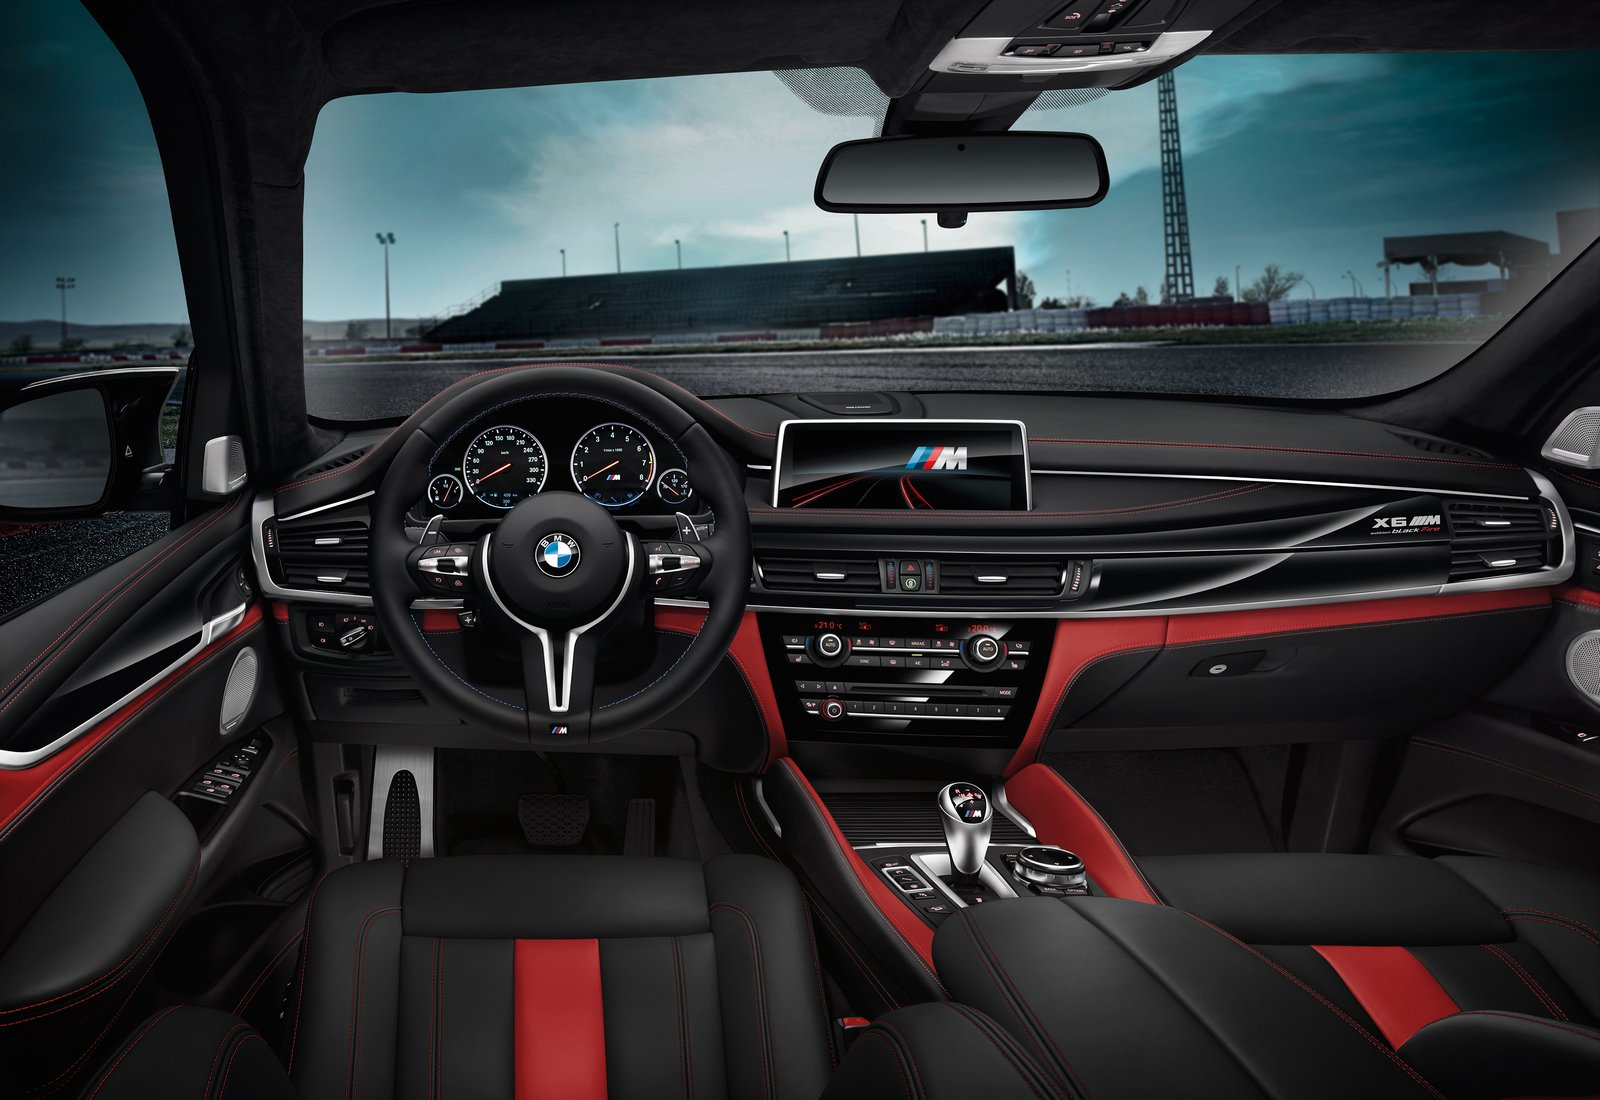 BMW-X5-M-Black-Fire-Edition-4